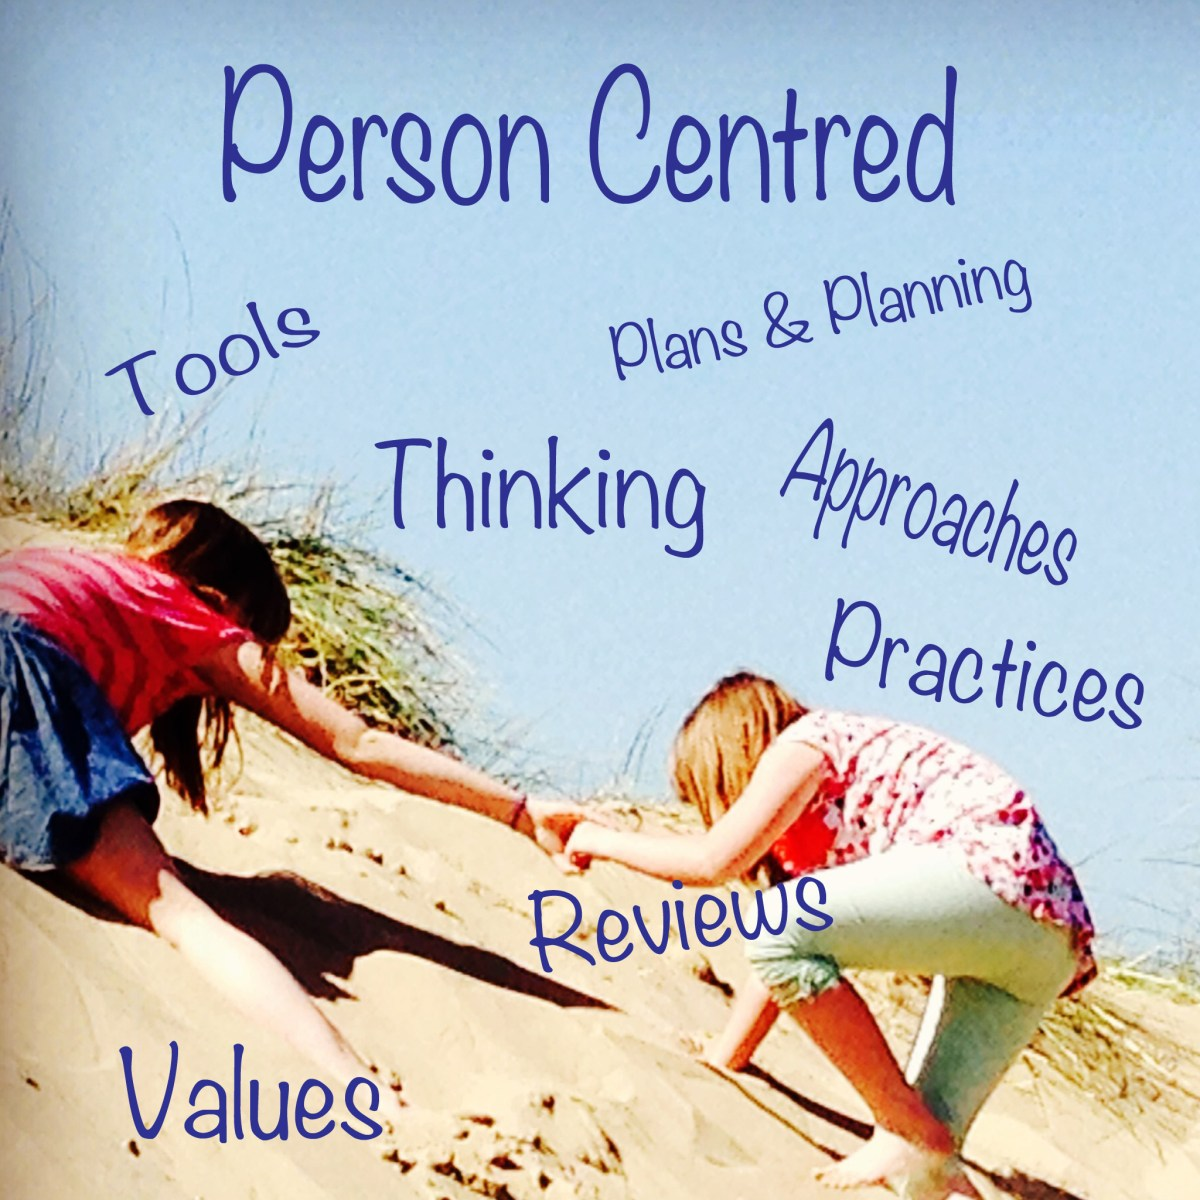 Person Centred - the Terminology